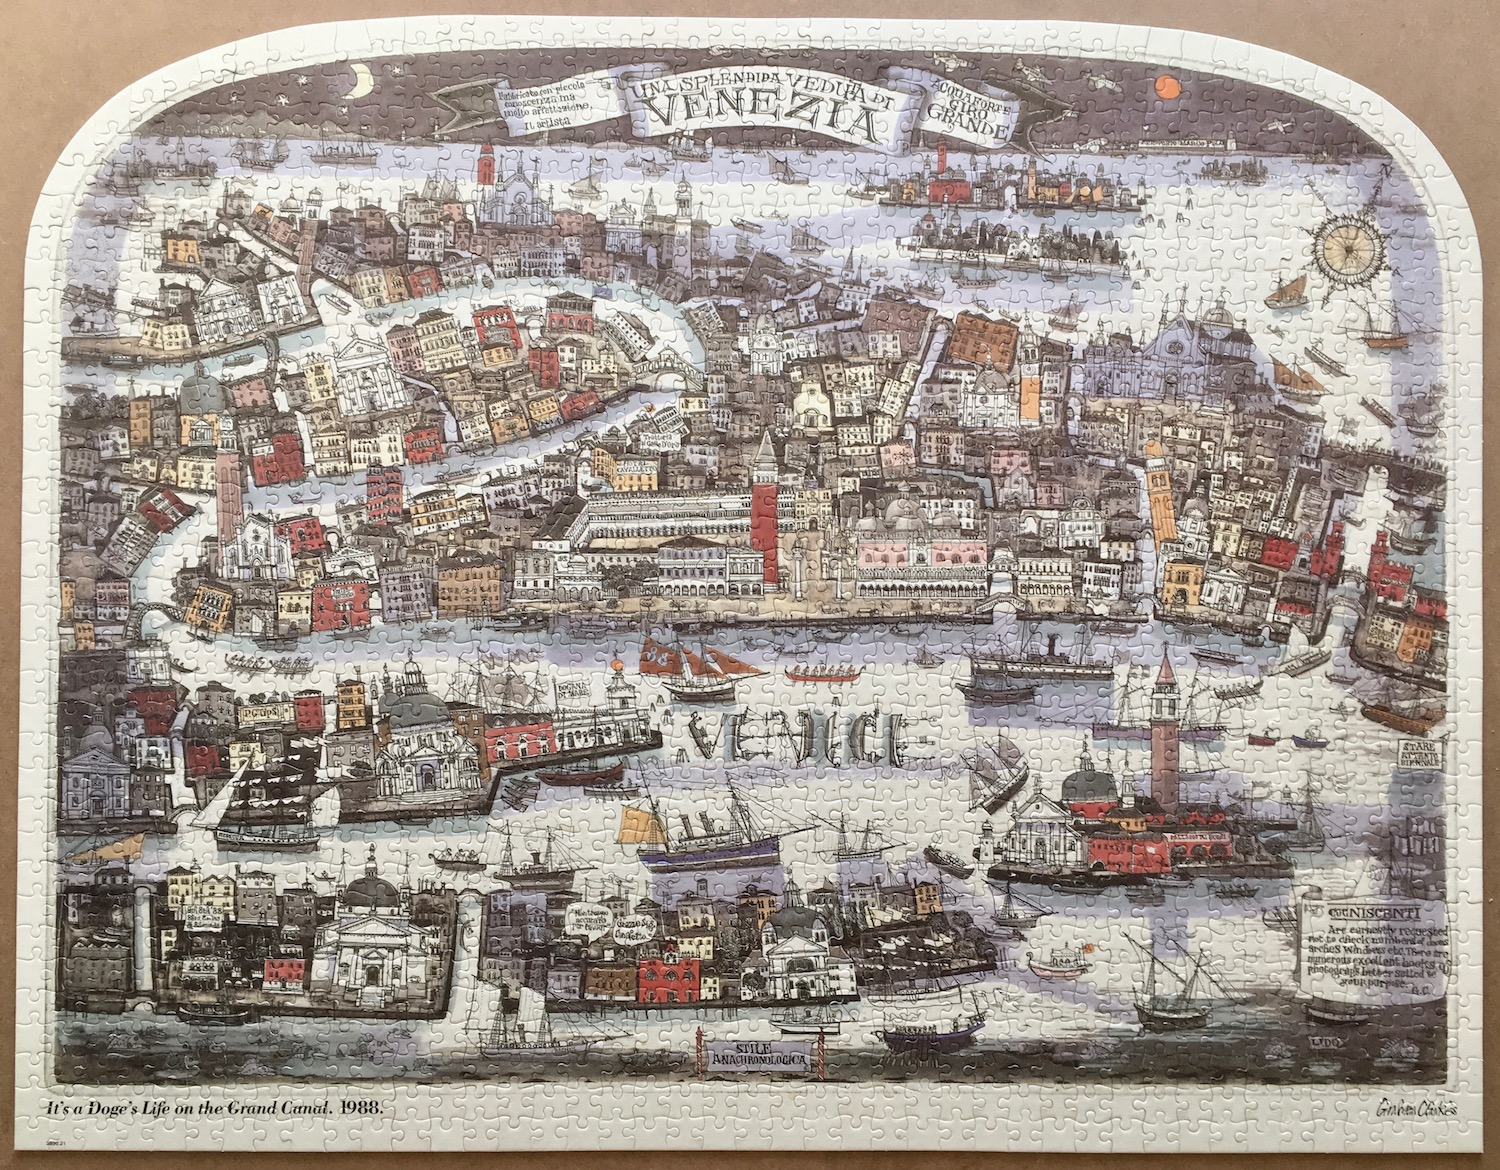 1500, MB, Its a Doges Life on the Grand Canal, Blog Post, Picture of the puzzle assembled